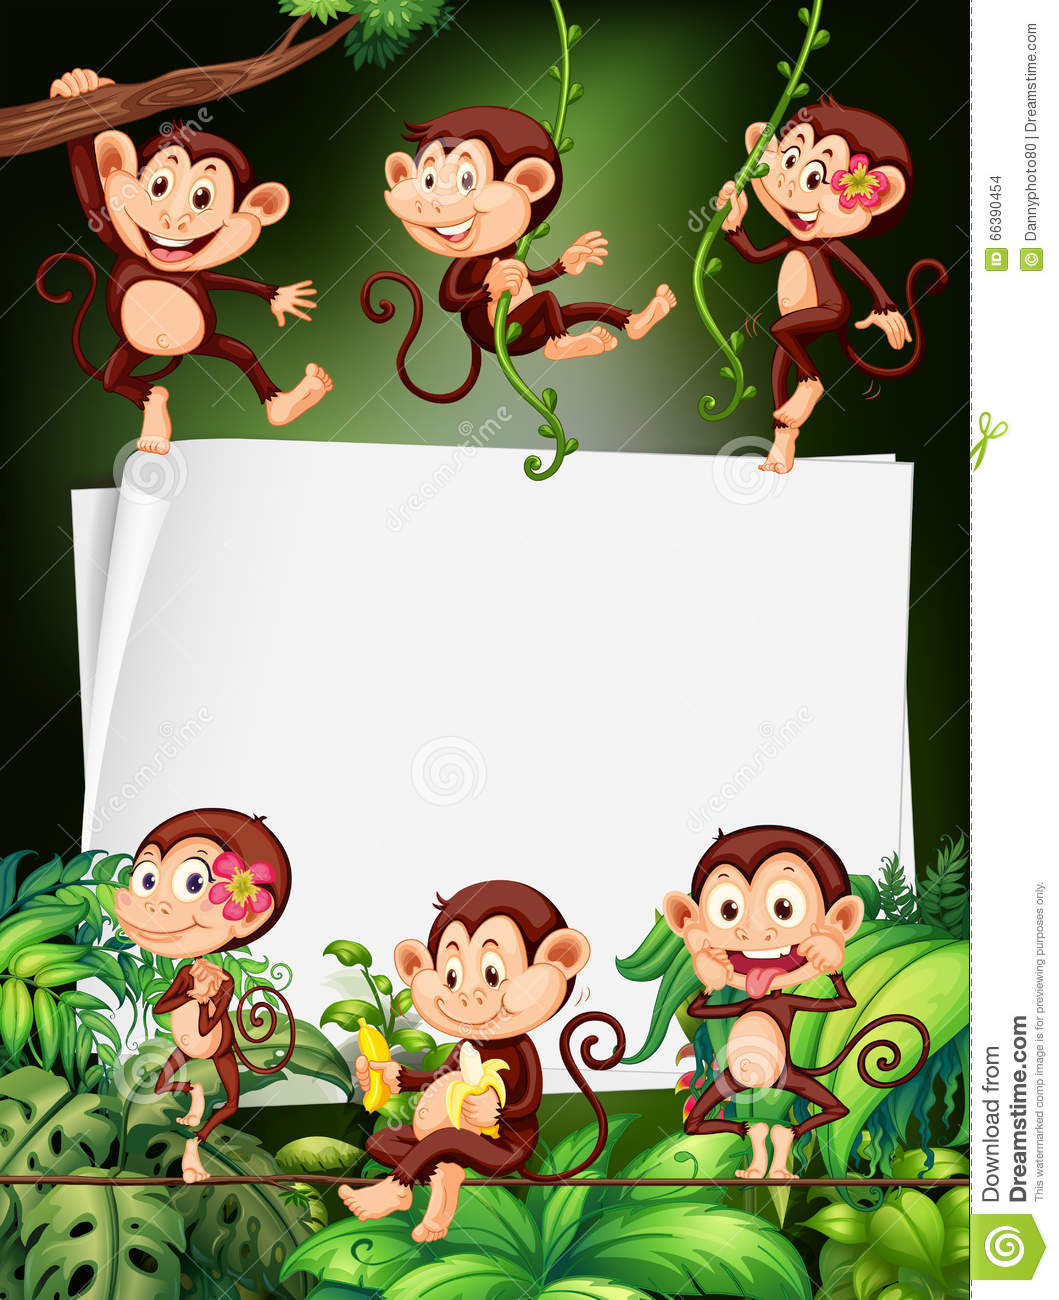 Border Design With Monkeys In The Forest Stock Vector